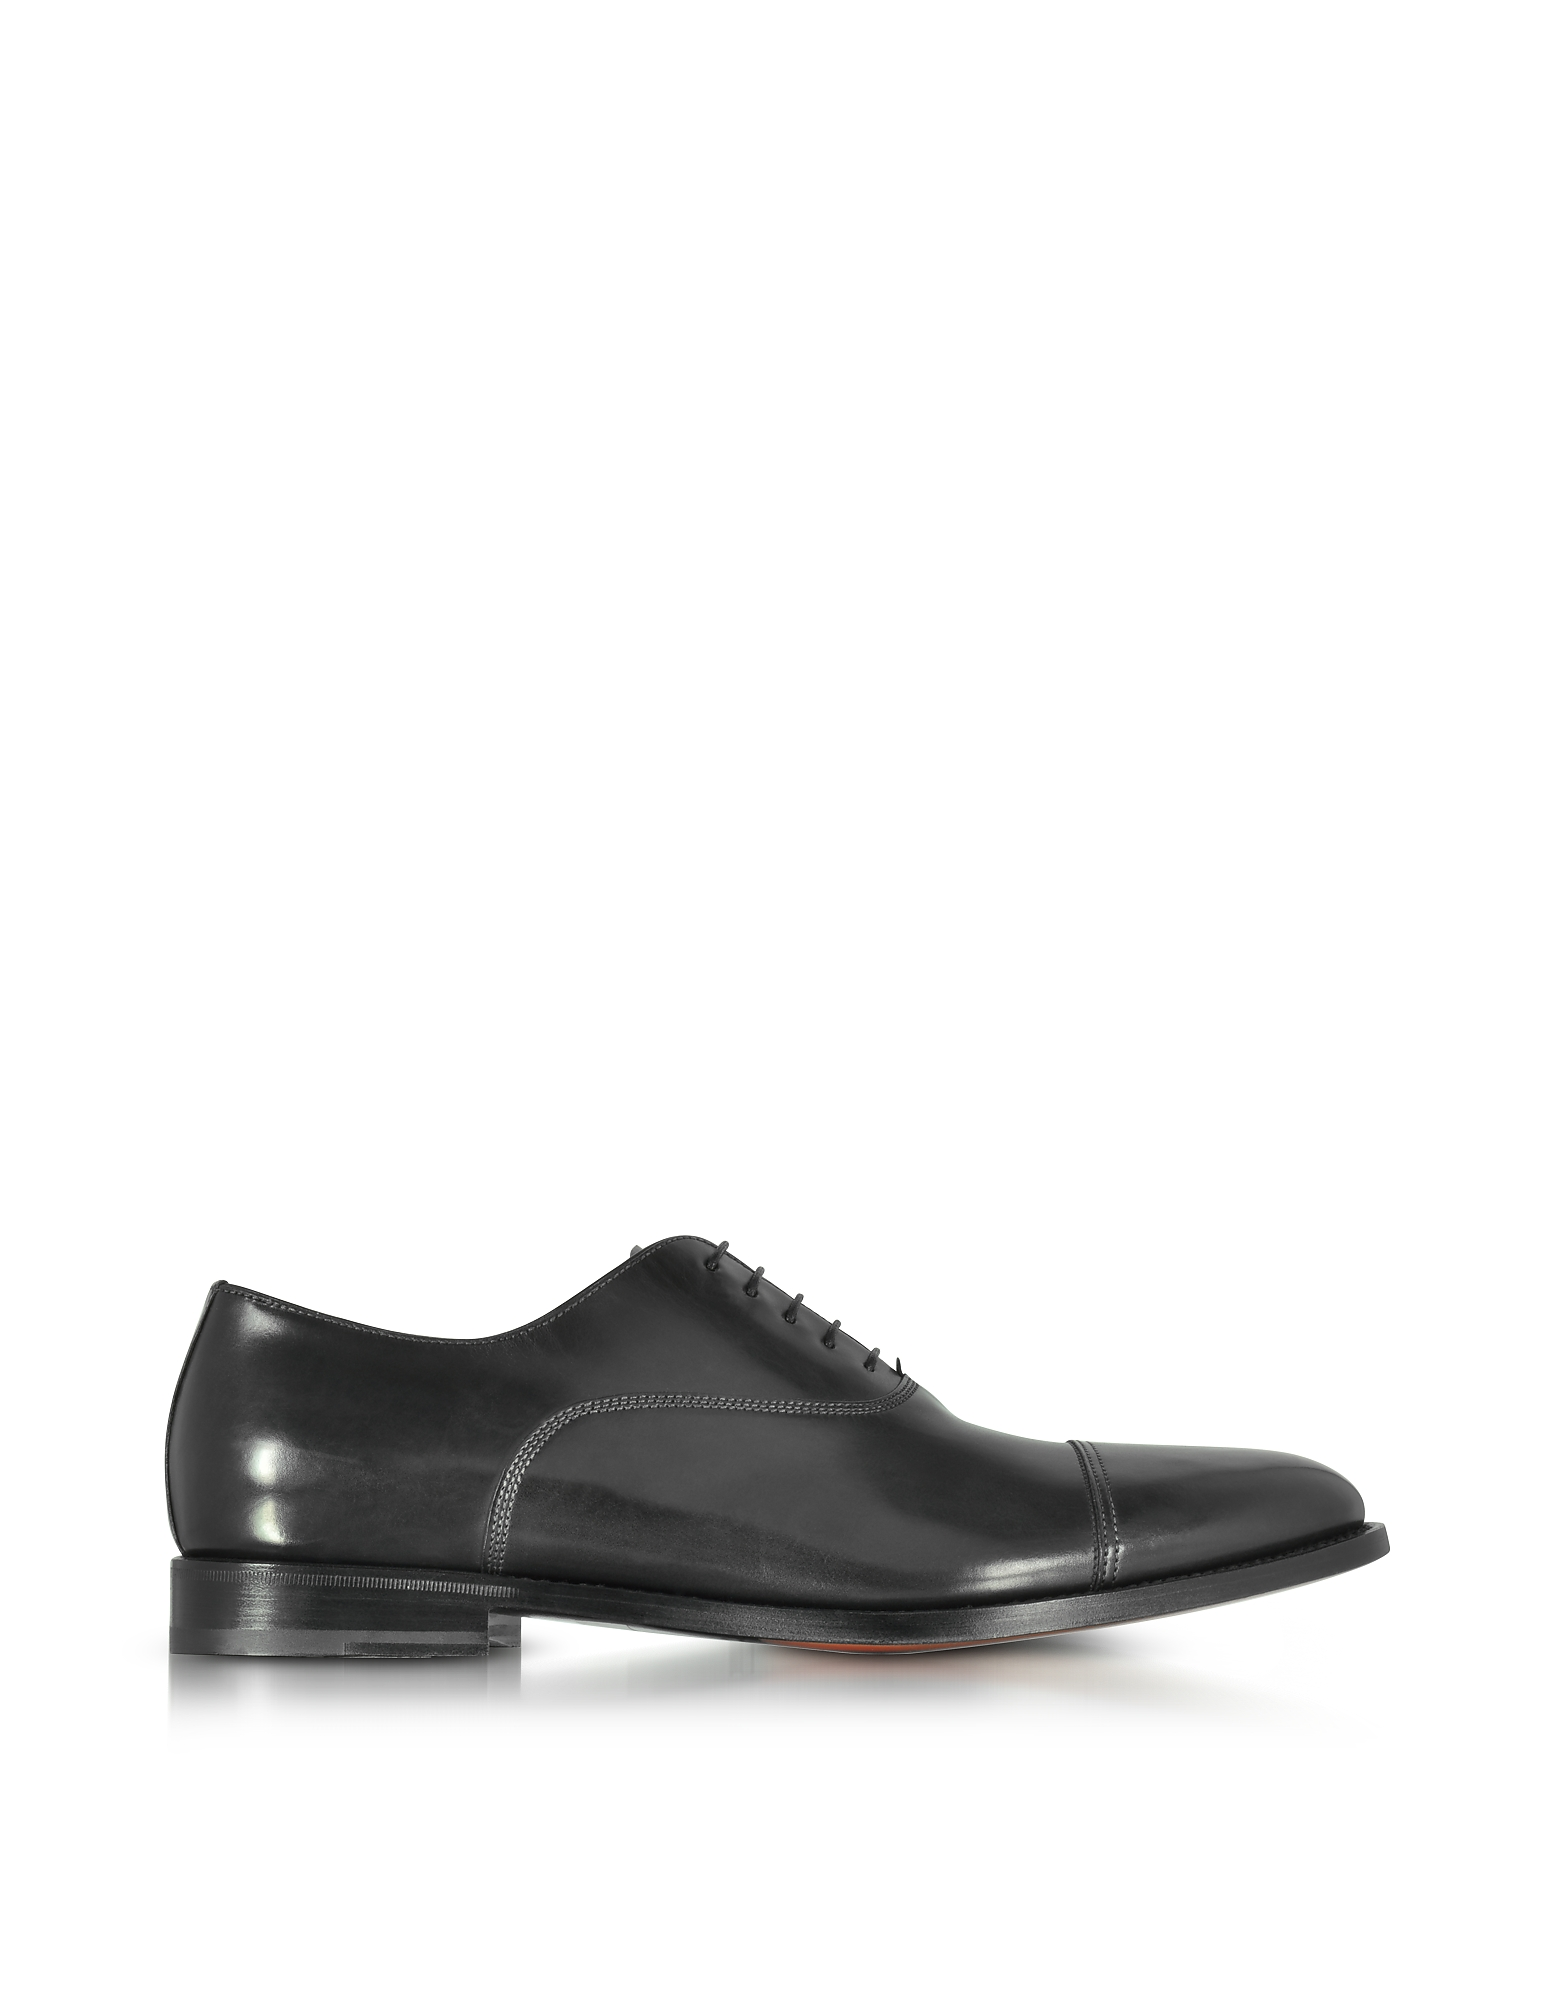 Santoni Shoes, Wilson Black Leather Oxford Shoes